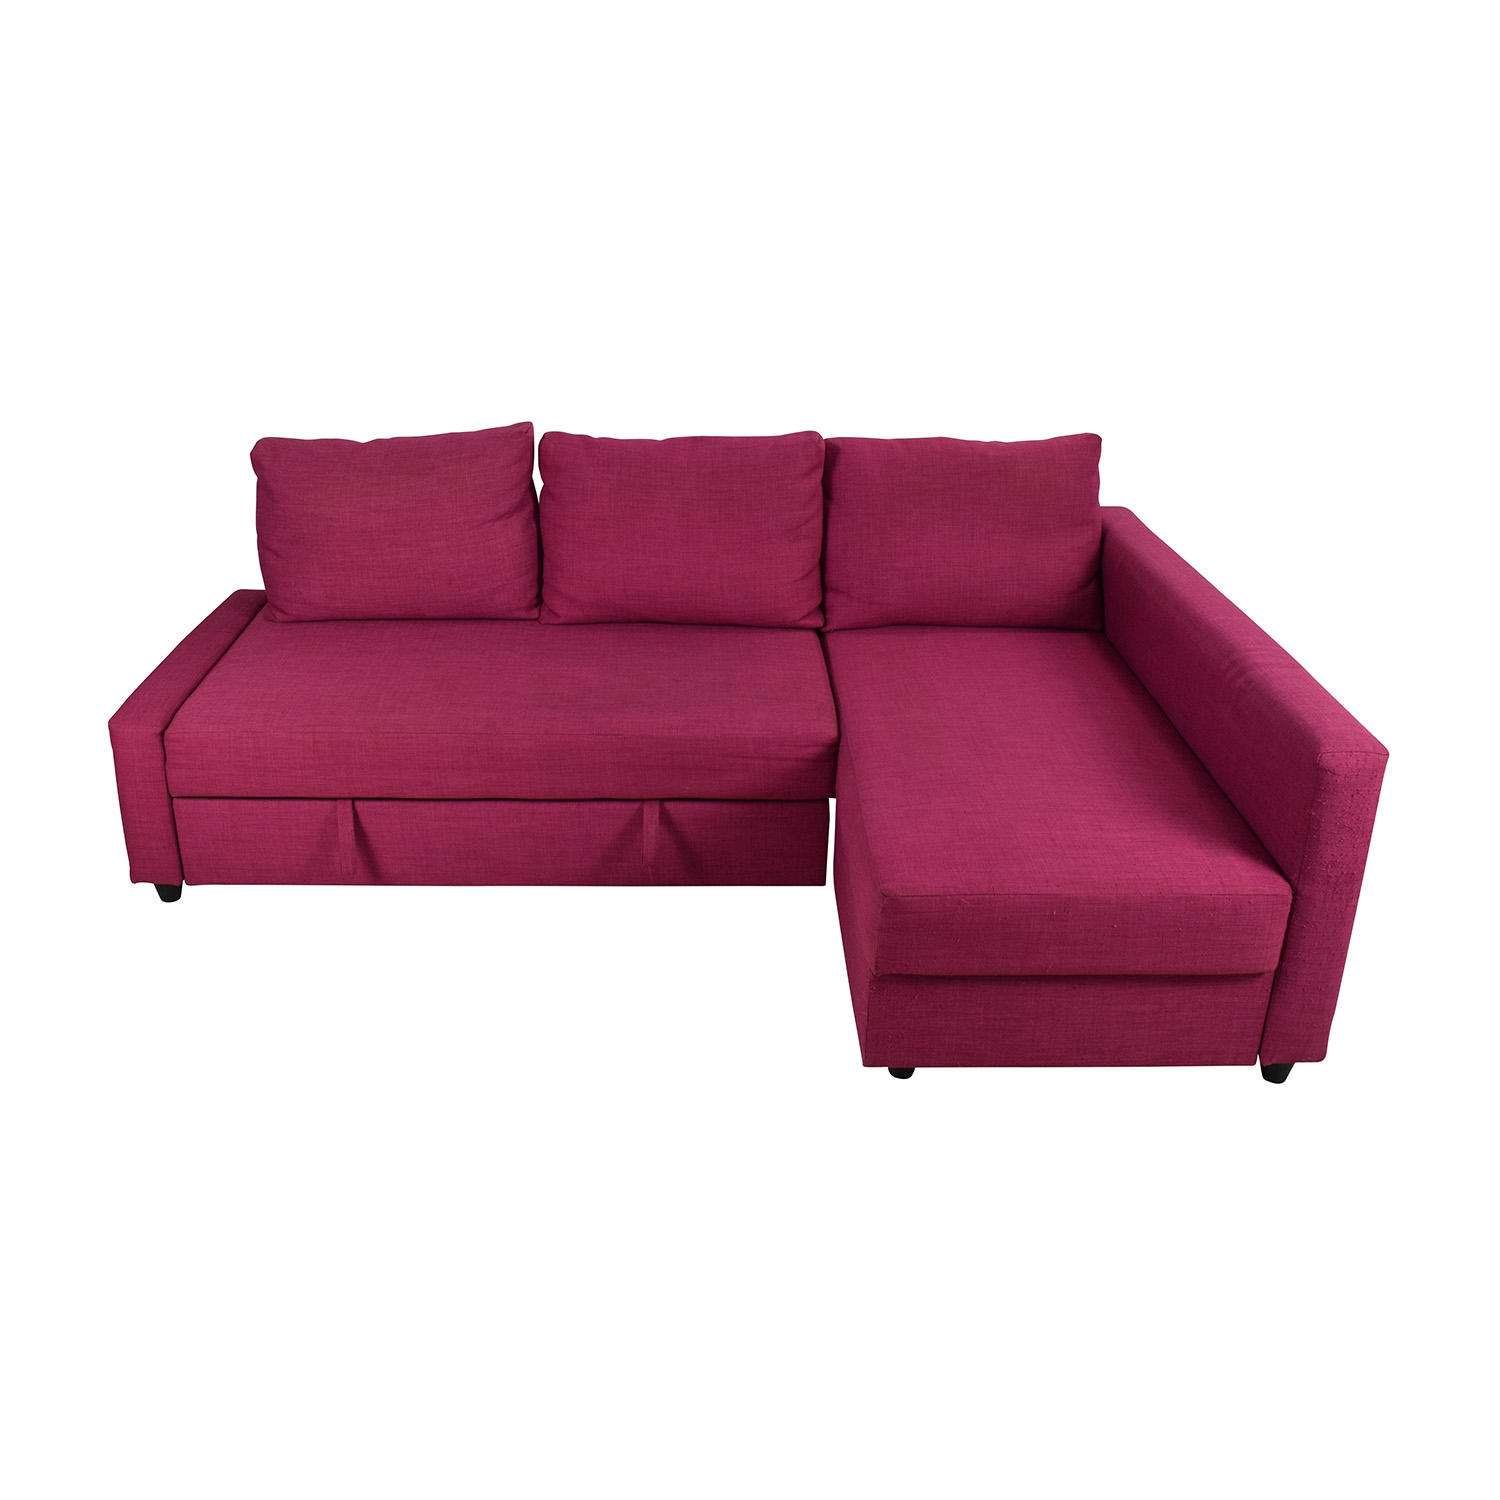 pink sofa ikea s derhamn corner section samsta light pink. Black Bedroom Furniture Sets. Home Design Ideas